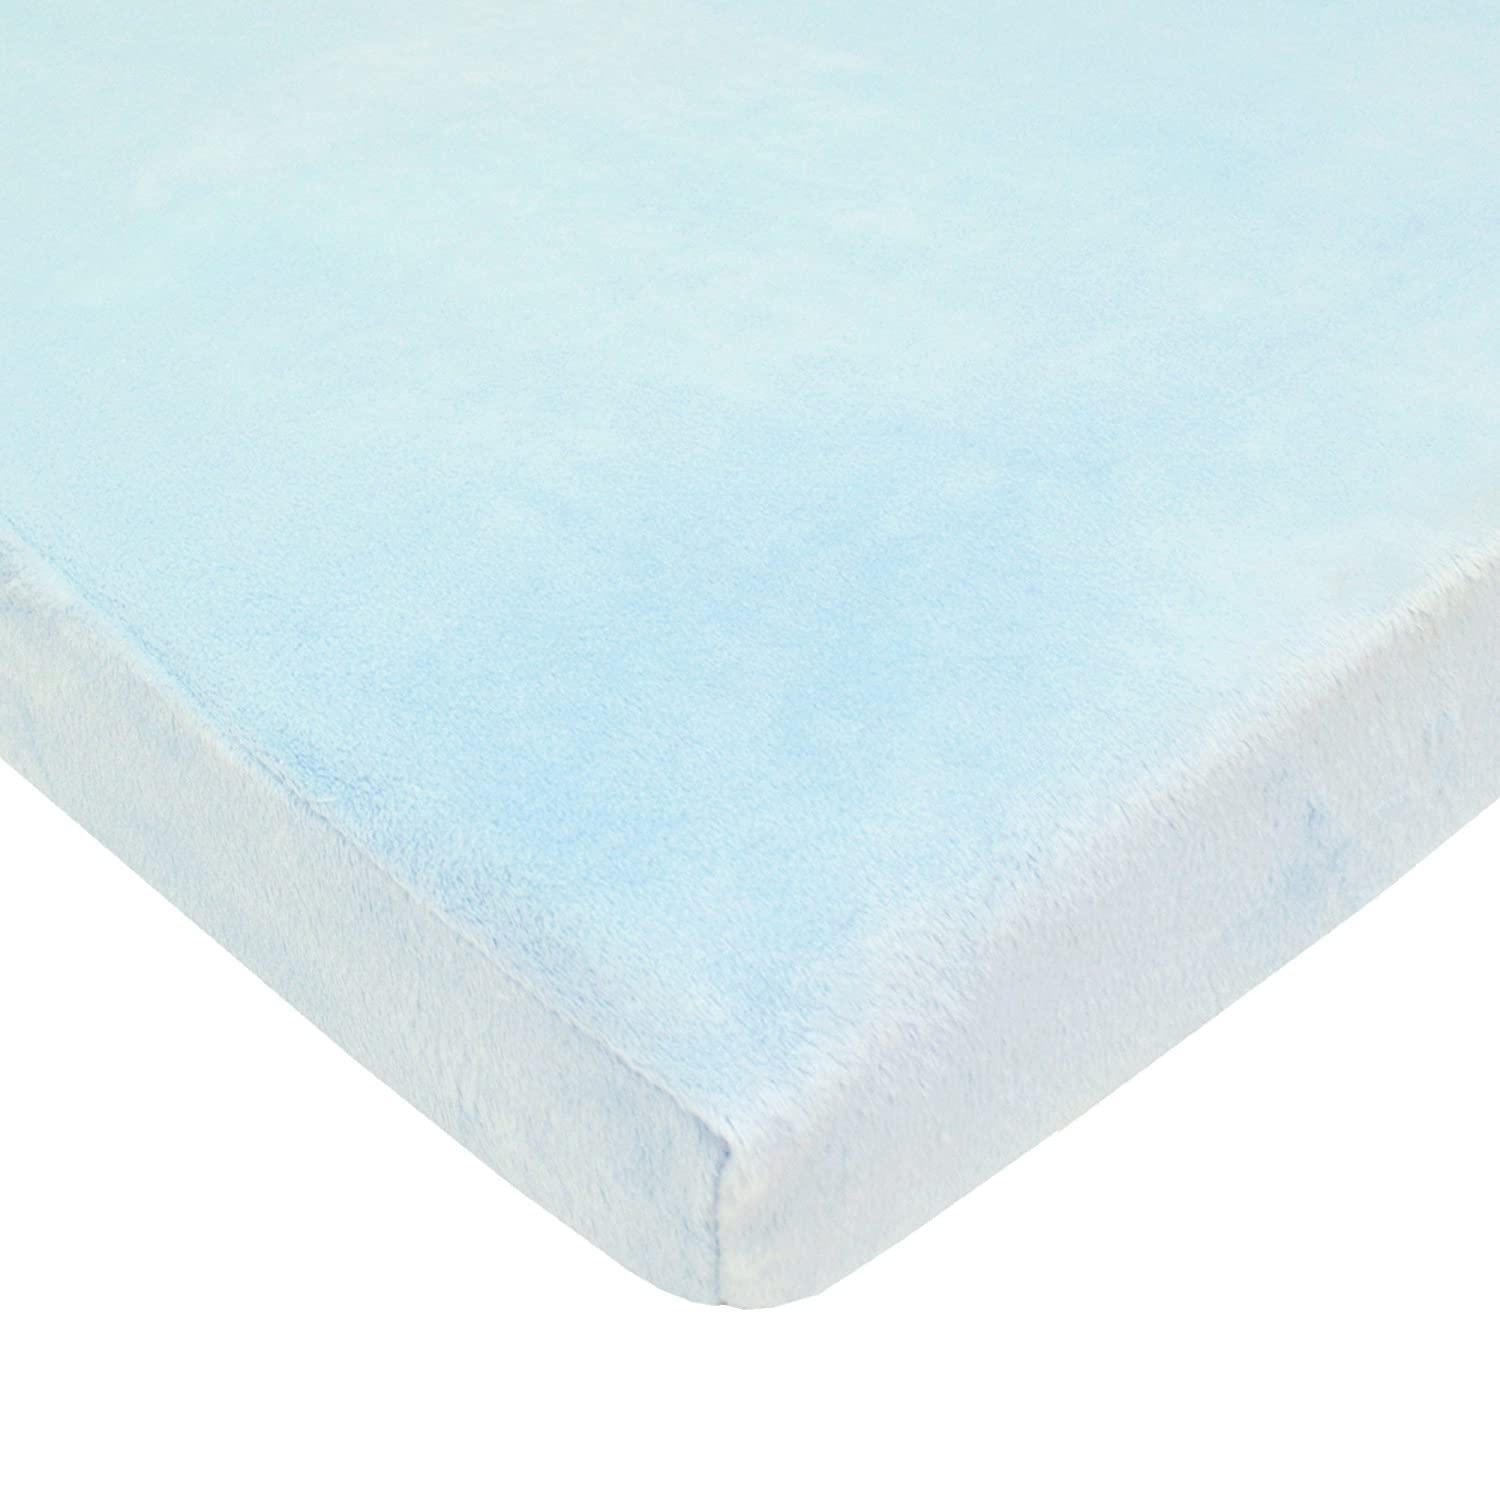 American Baby Company Heavenly Soft Chenille Fitted Portable/Mini-Crib Sheet, Blue, for Boys and Girls